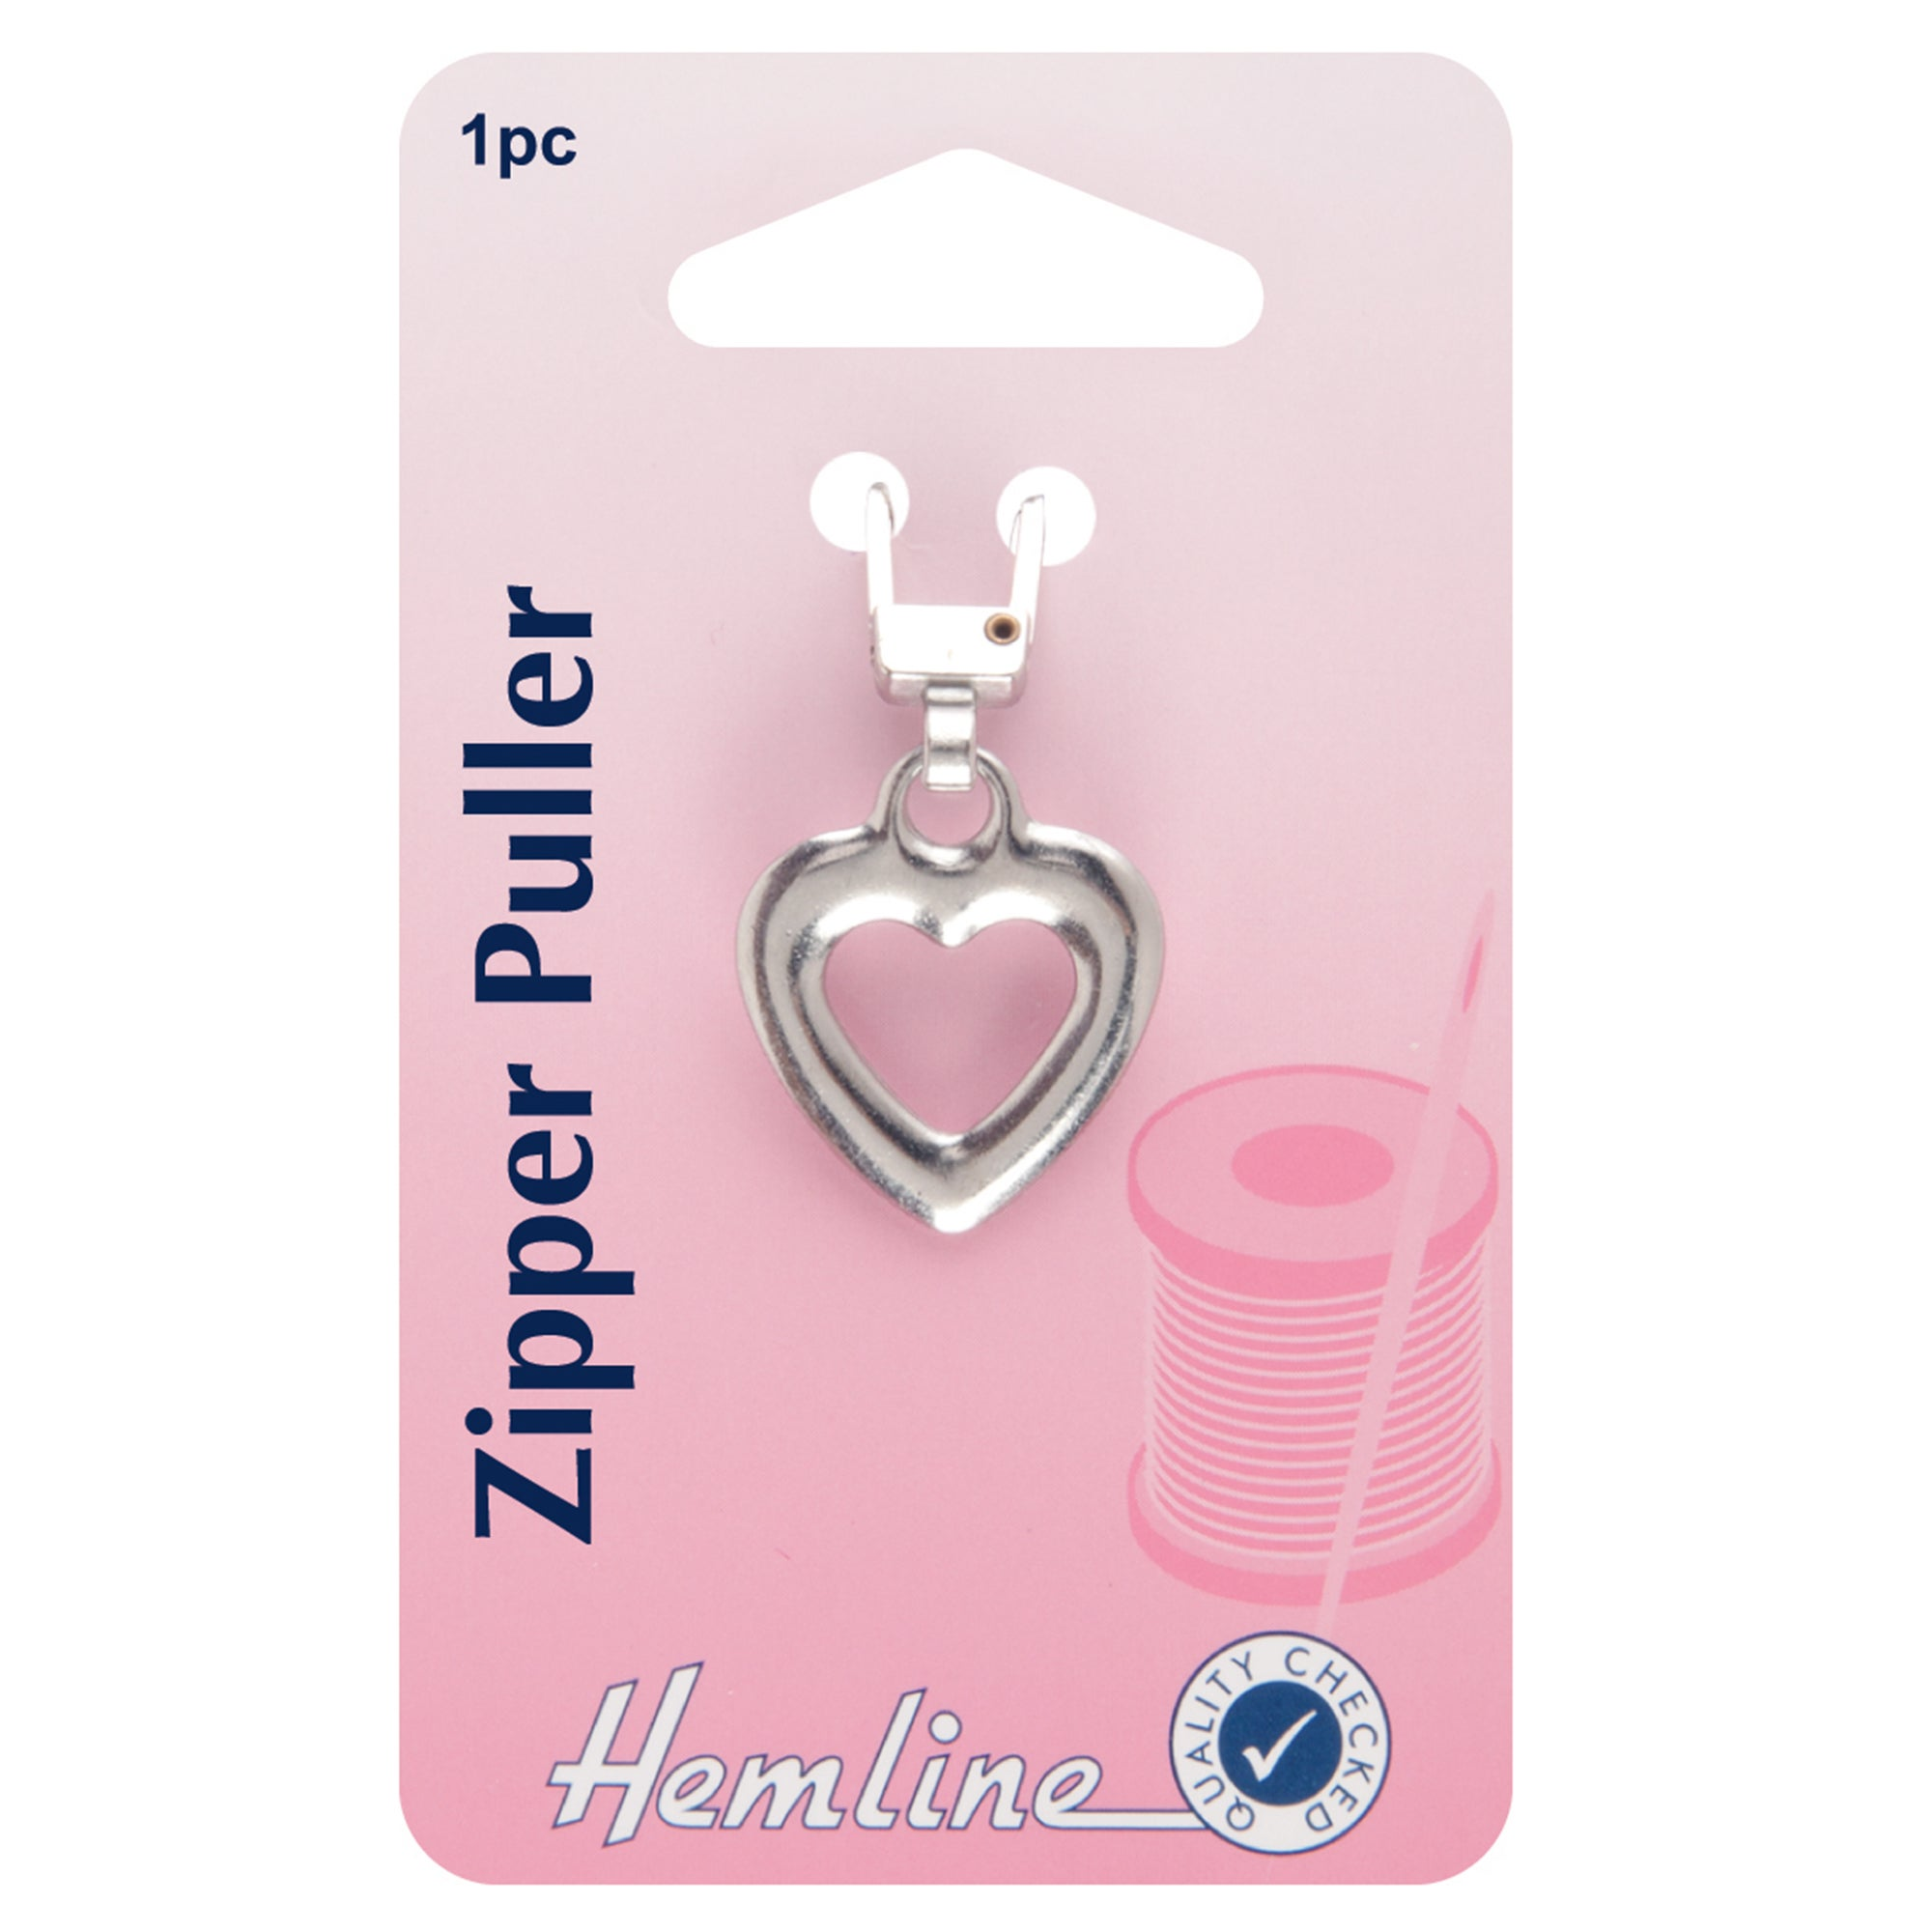 Hemline Heart Zipper Puller